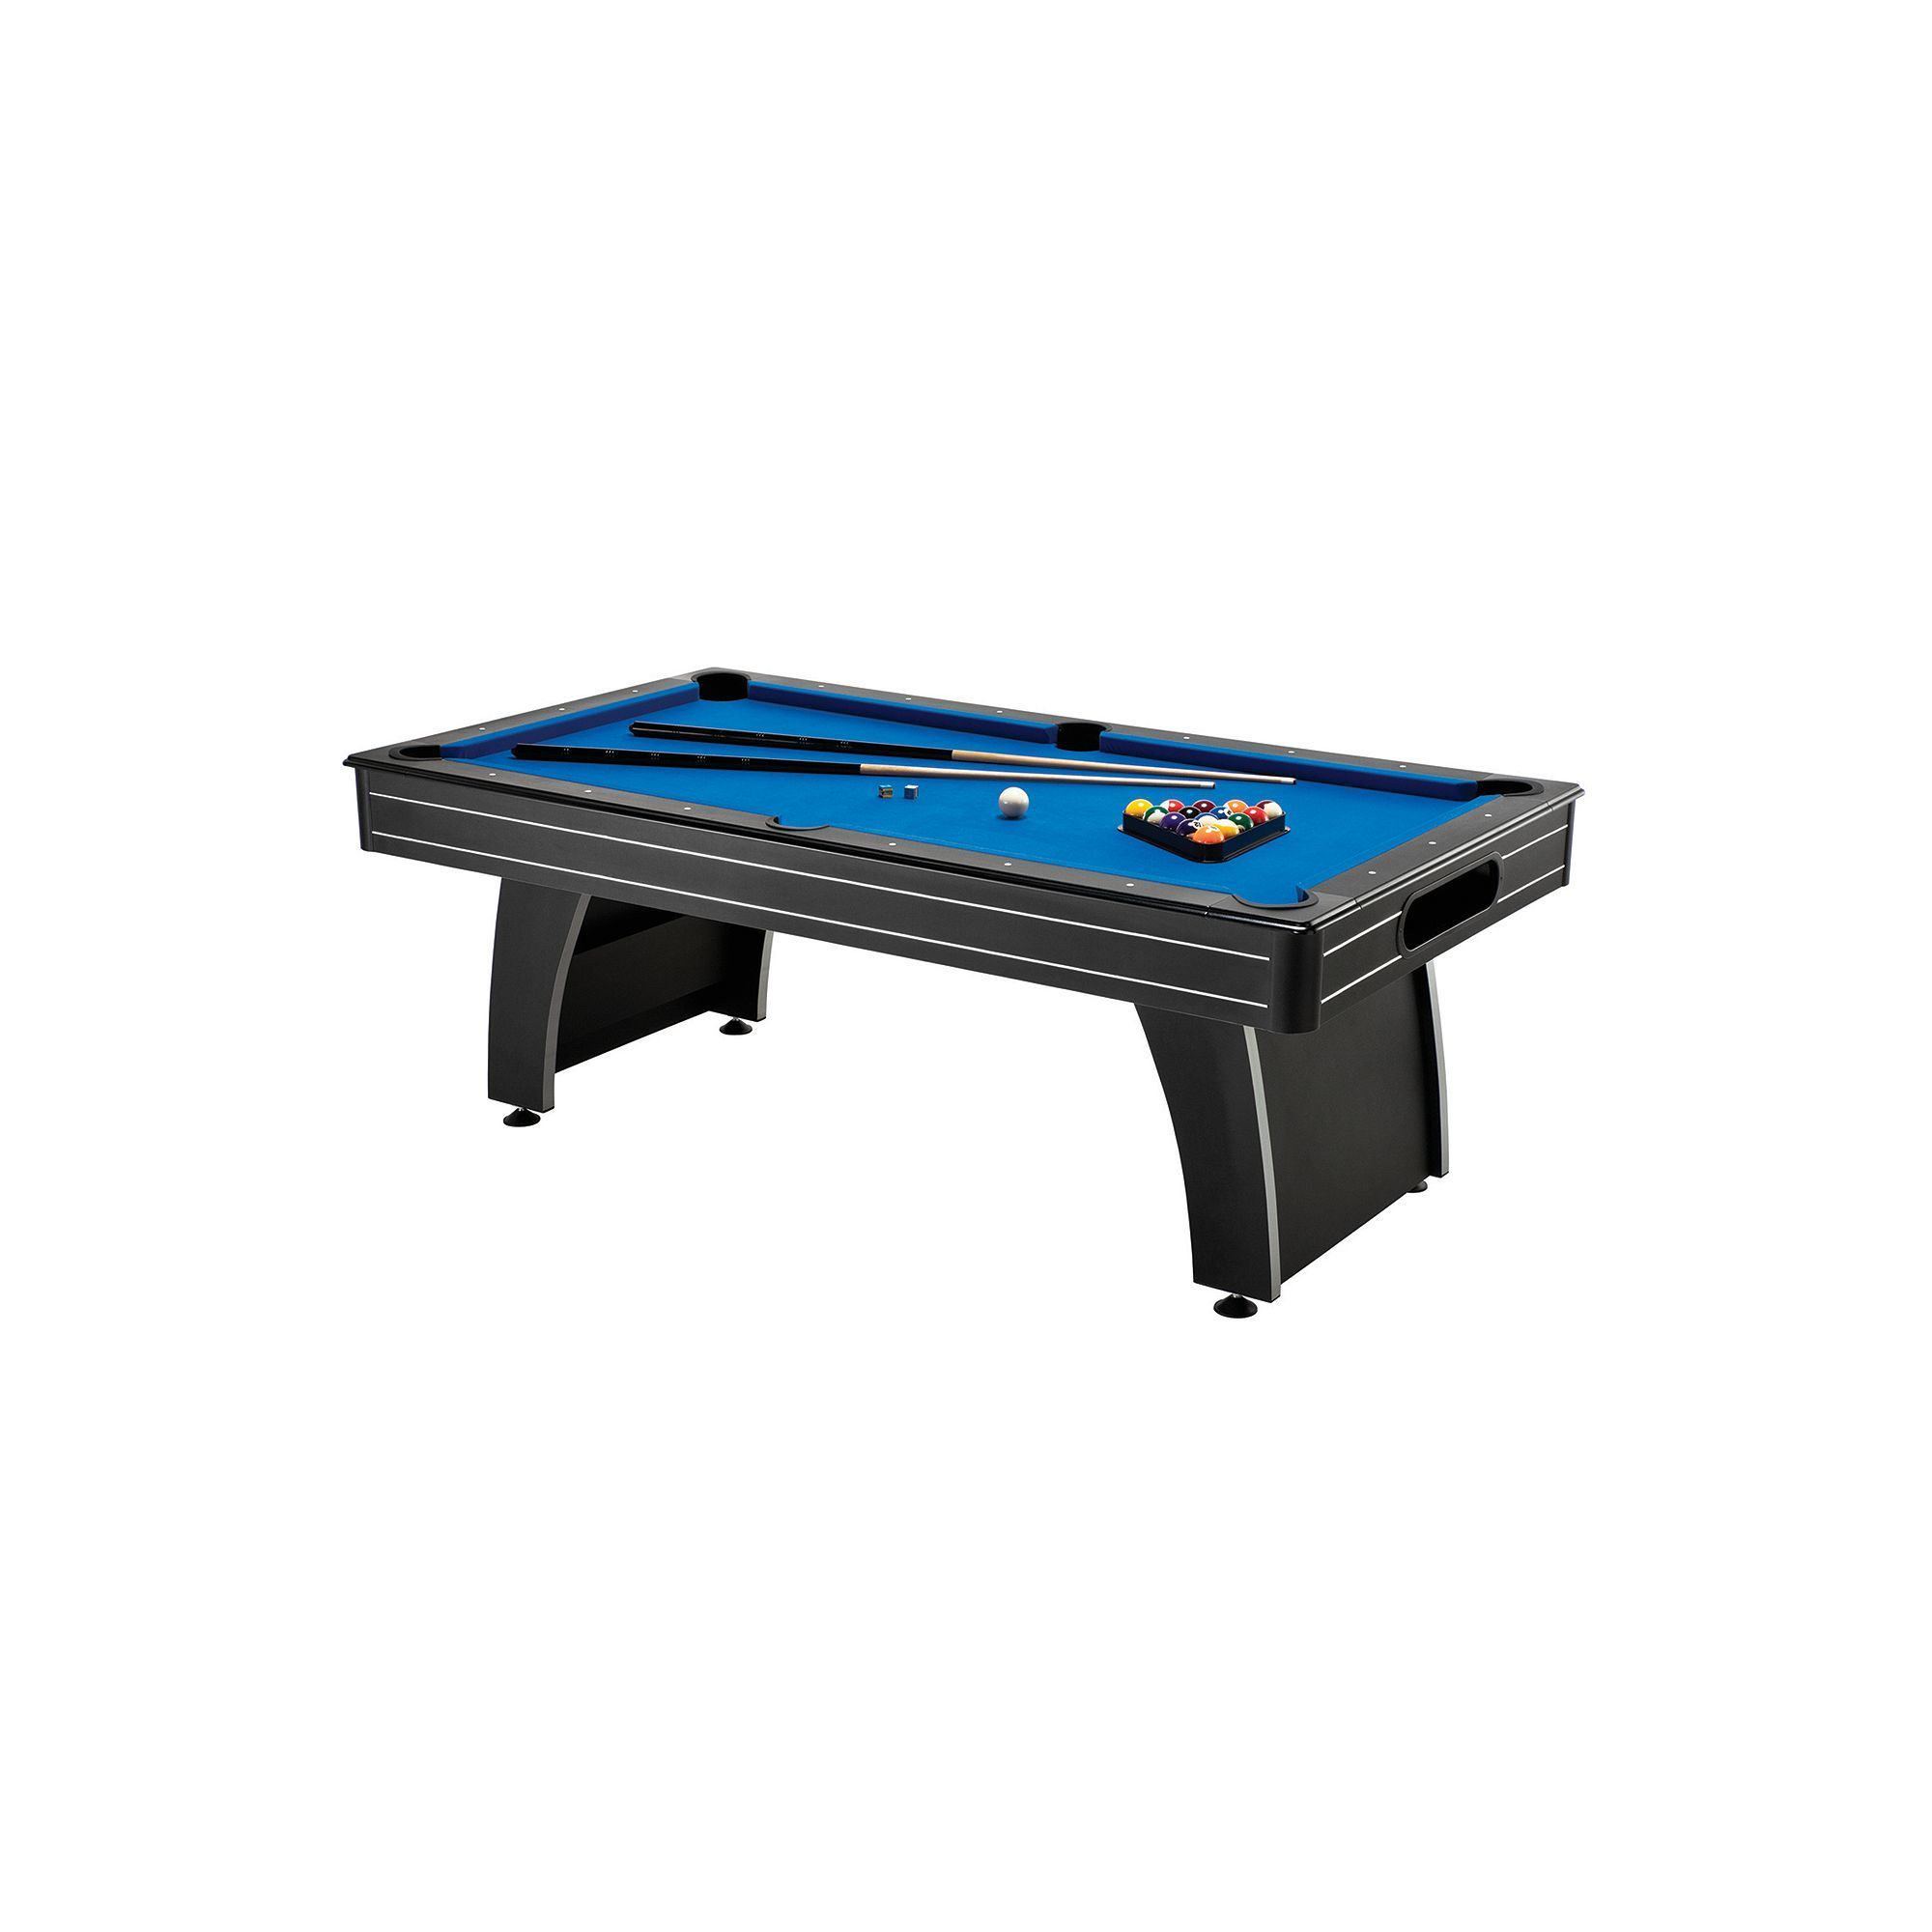 Fat Cat Tucson Mmxi Ft Billiard Table With Ball Return And Play - Fat cat tucson pool table